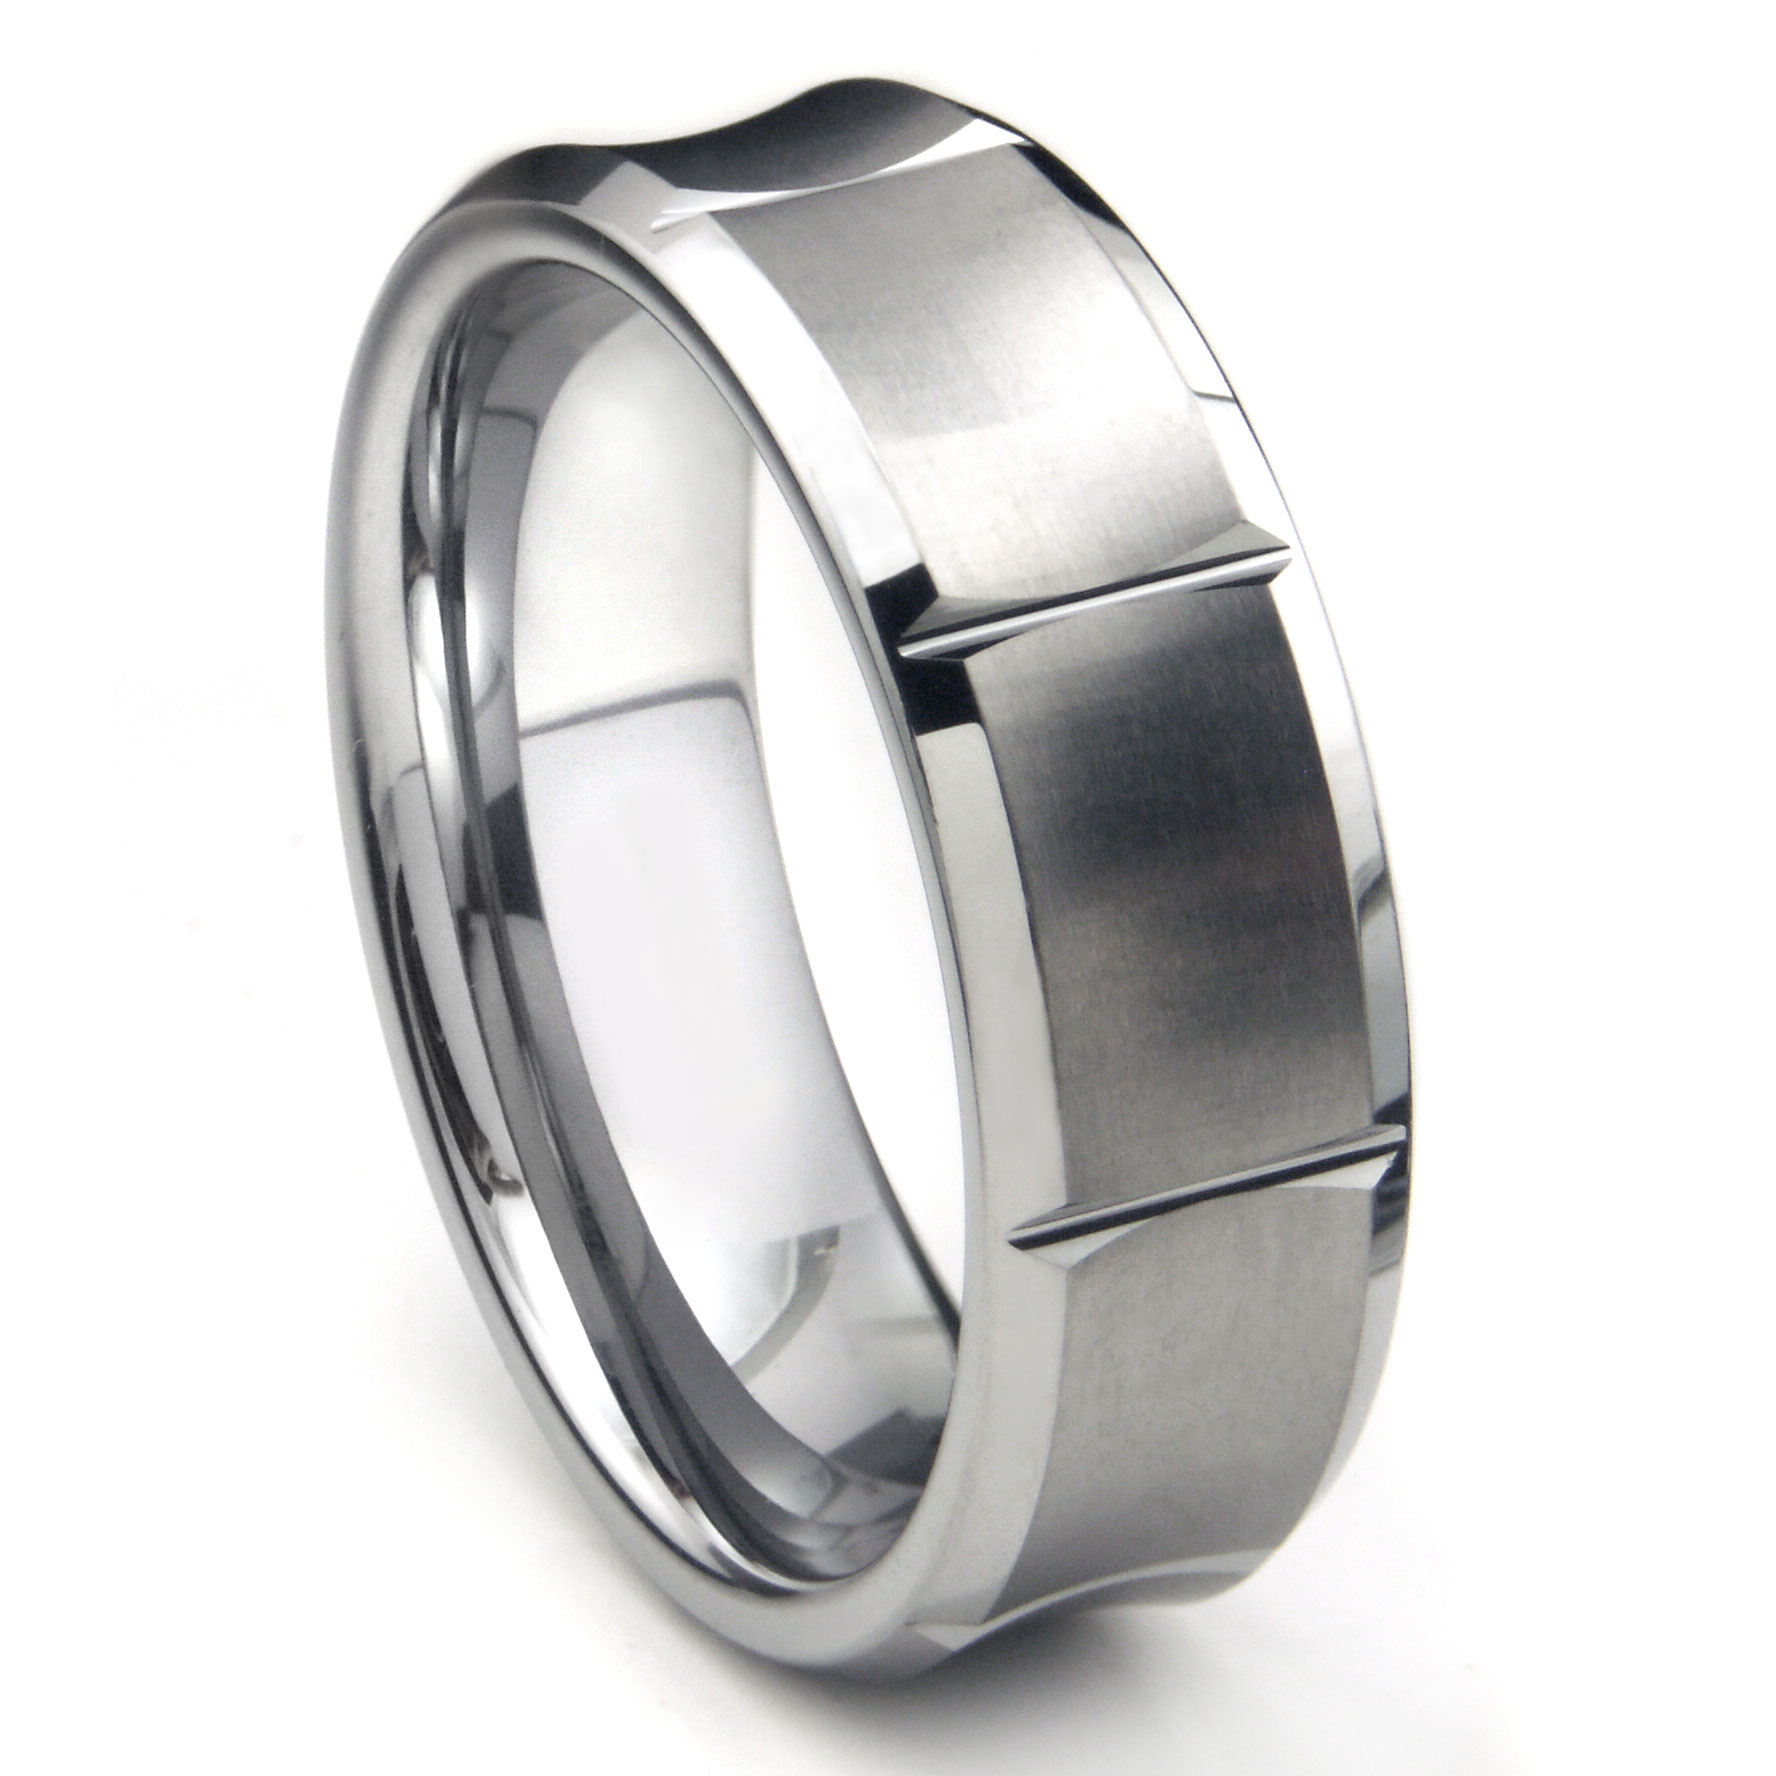 This is a graphic of Tungsten Carbide Concave Wedding Band Ring w/ Horizontal Grooves